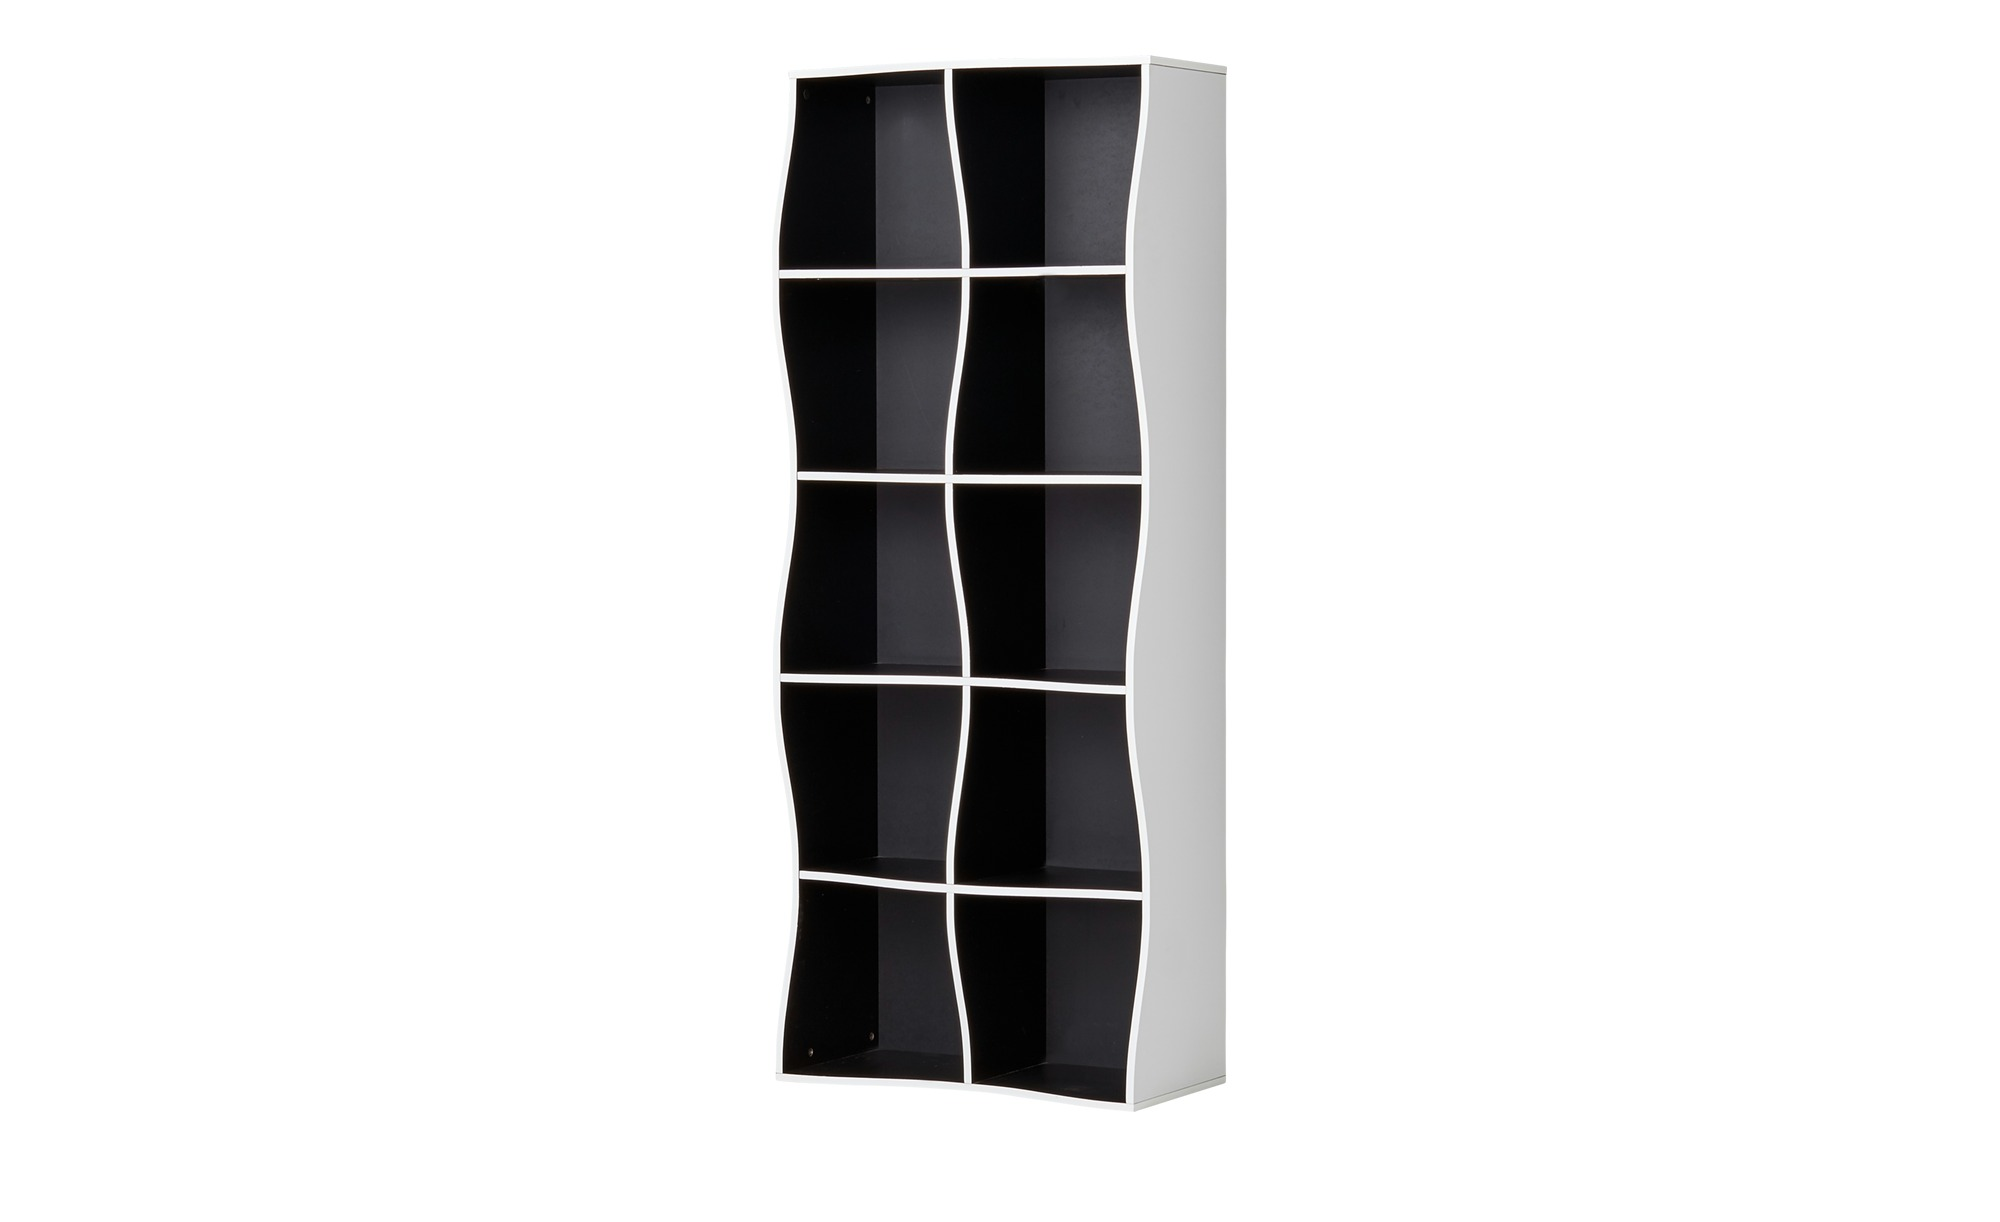 regal curve breite 60 cm h he 150 cm mehrfarbig online kaufen bei woonio. Black Bedroom Furniture Sets. Home Design Ideas